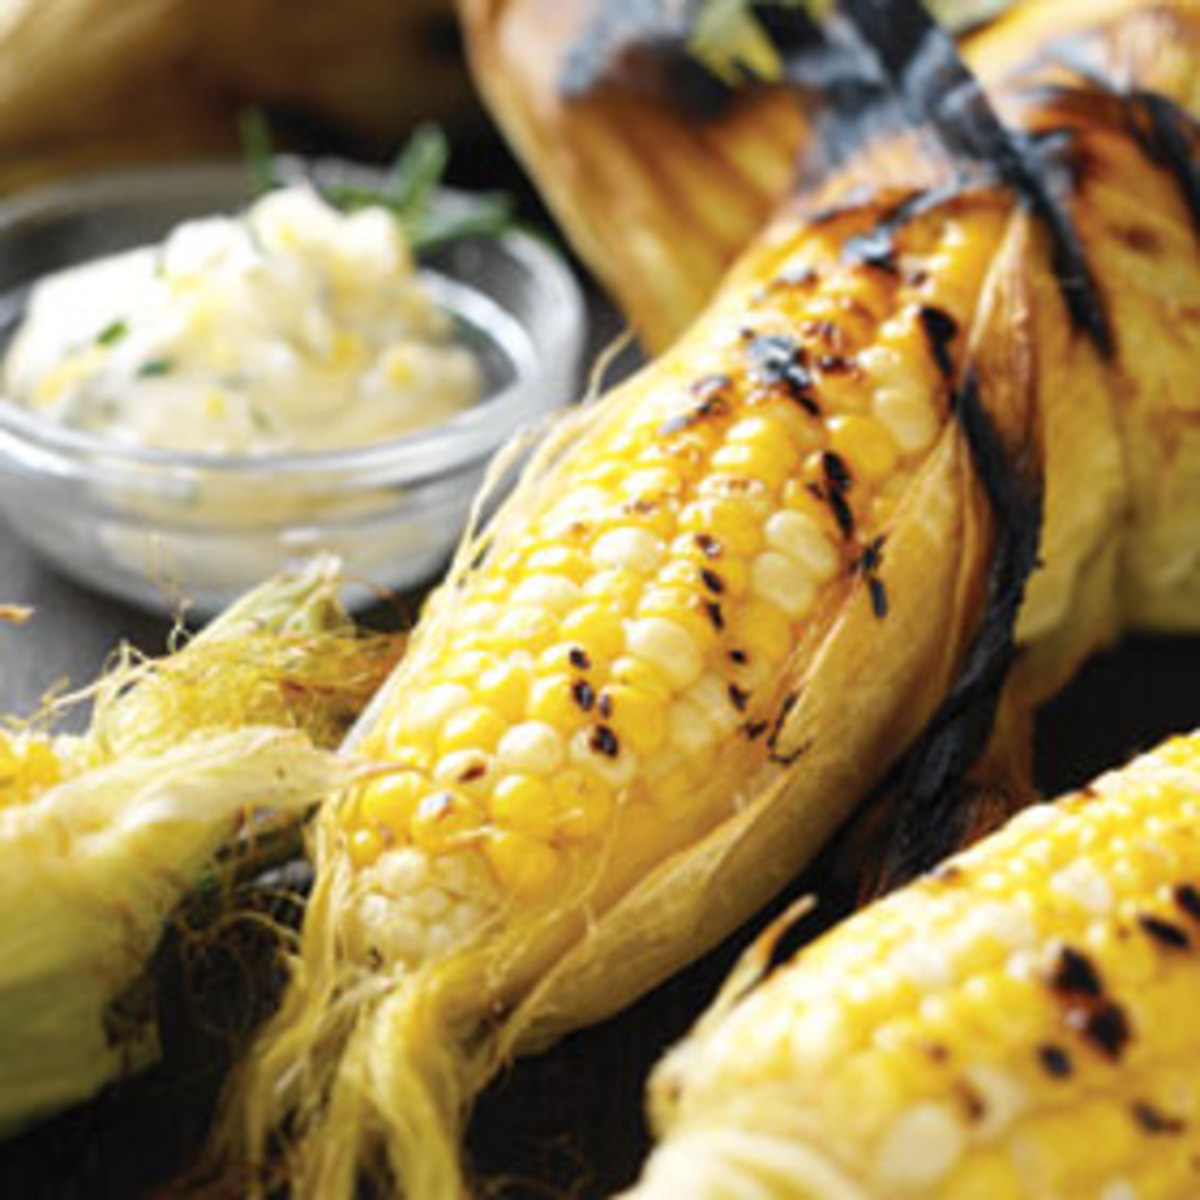 The Best 4 Ways to Grill or Barbecue Corn on the Cob